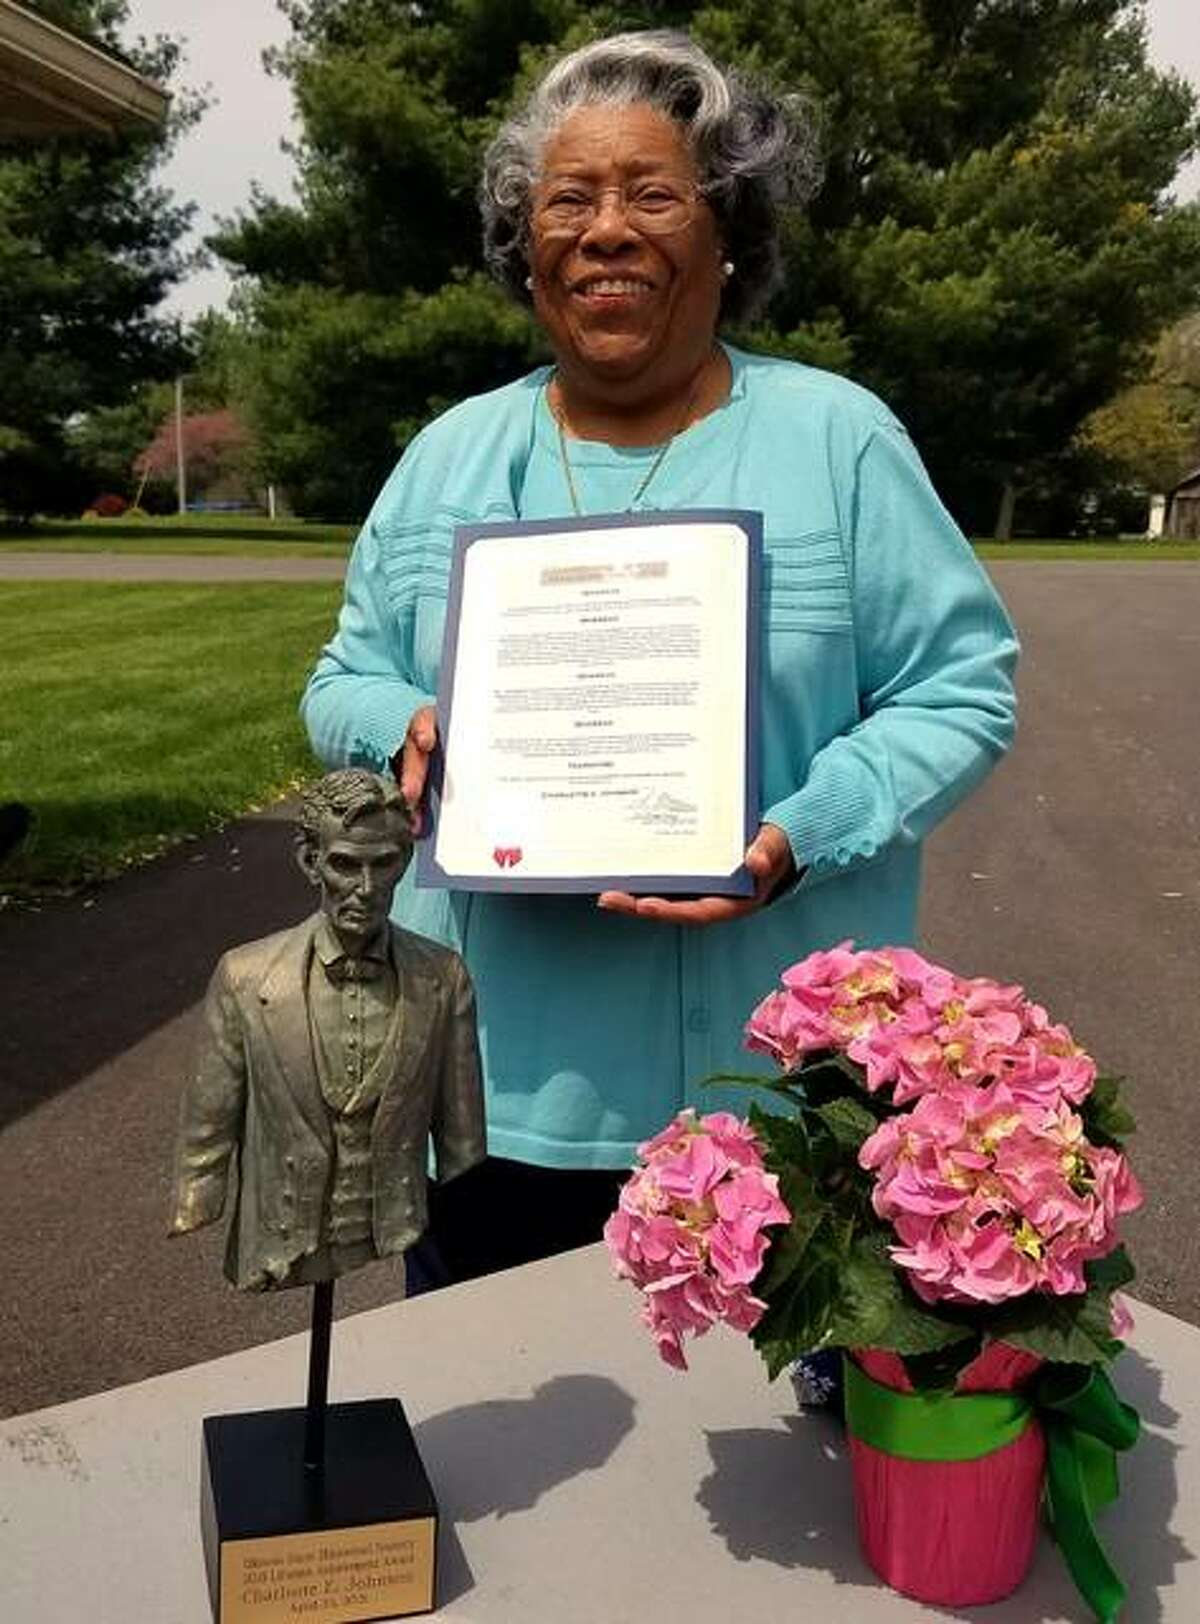 Charlotte E. Johnson of Alton on Friday received the 2021 Lifetime Achievement Award from the Illinois State Historical Society.